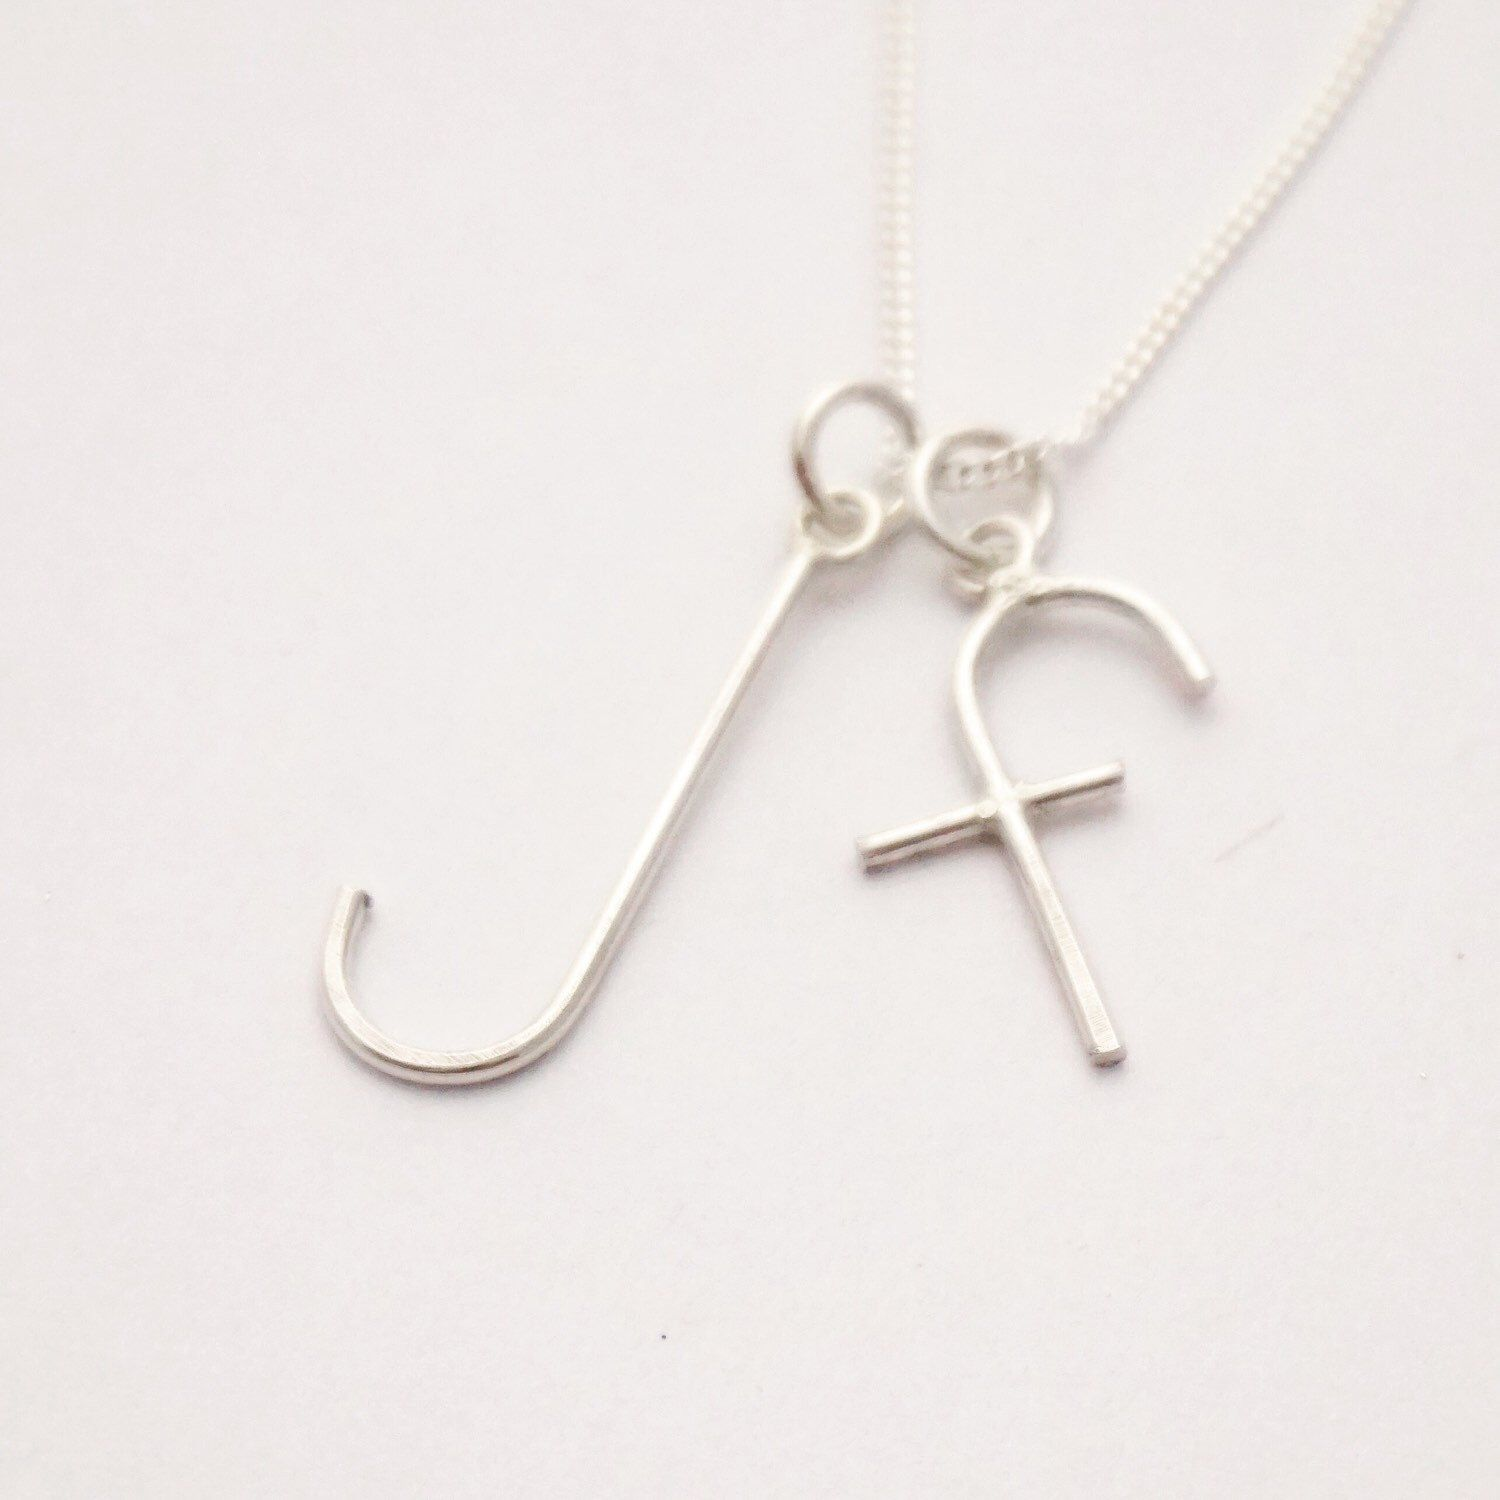 ALPHABET sterling silver necklace or pendant by STICKTAILS